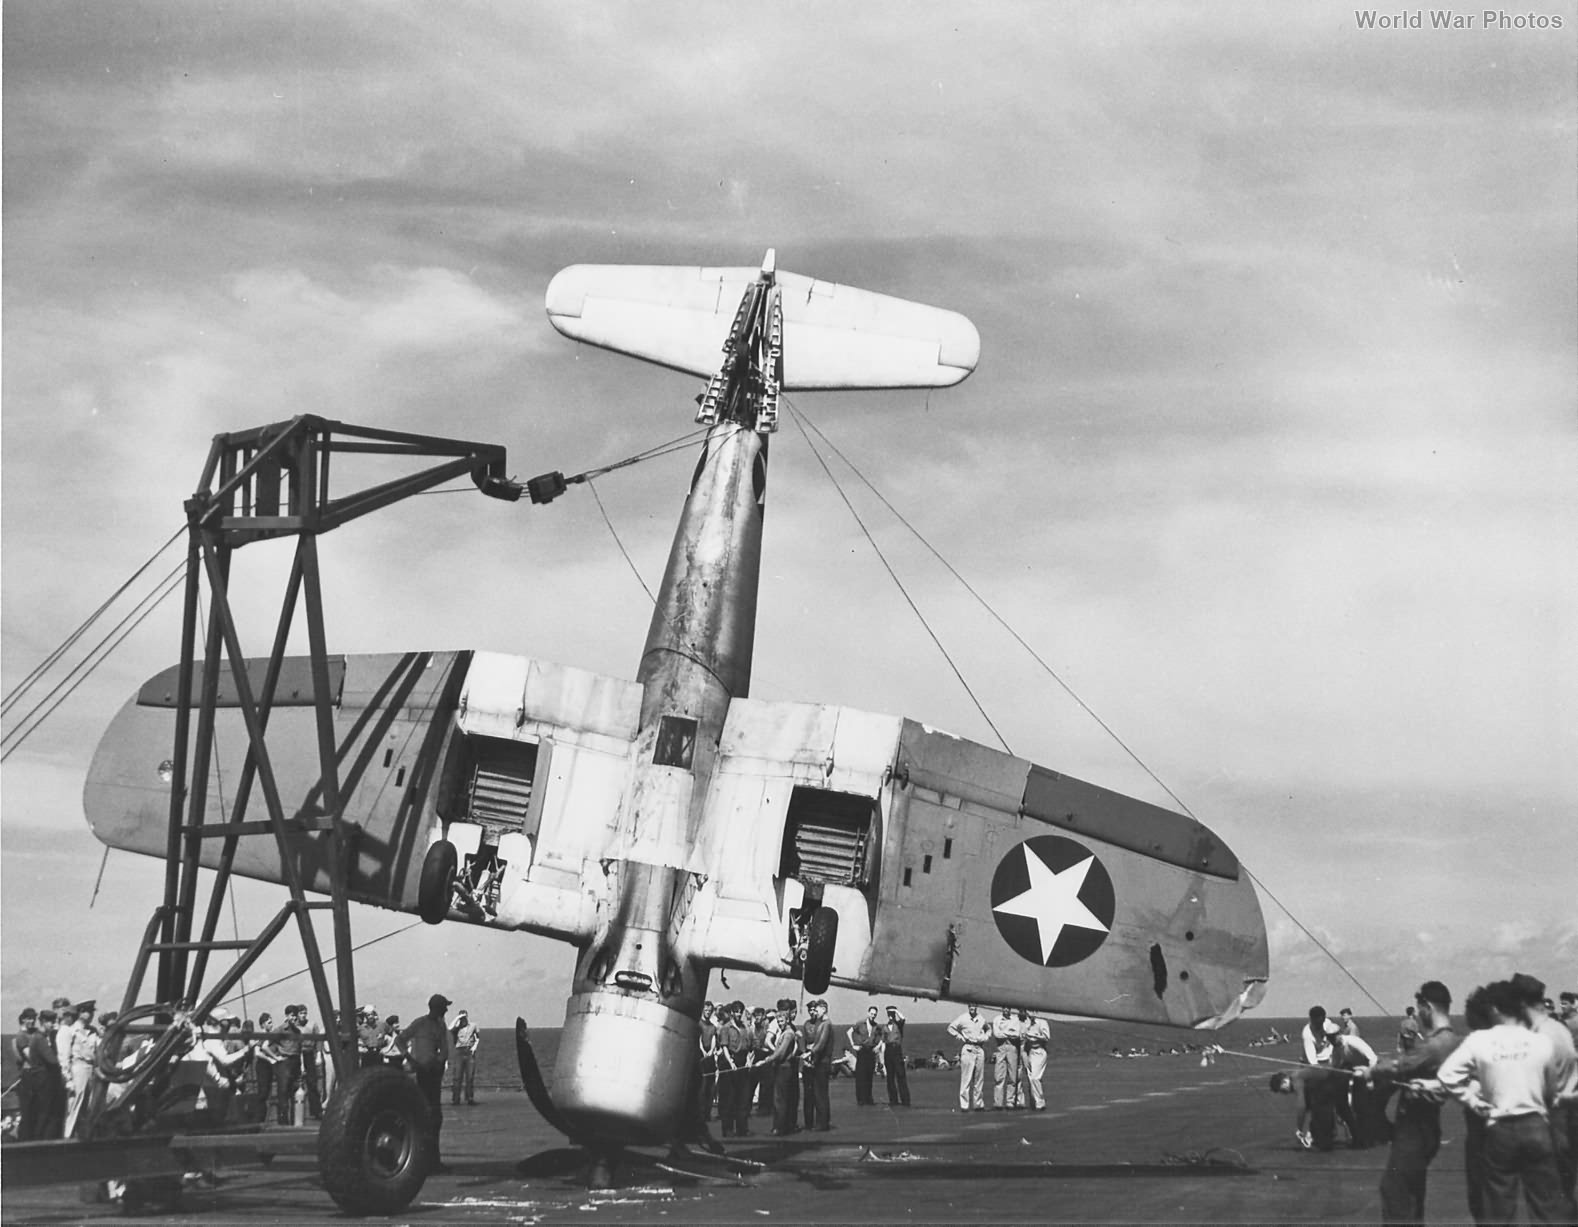 F4U-1 of VF-17 is being lifted from the deck of USS Bunker Hill